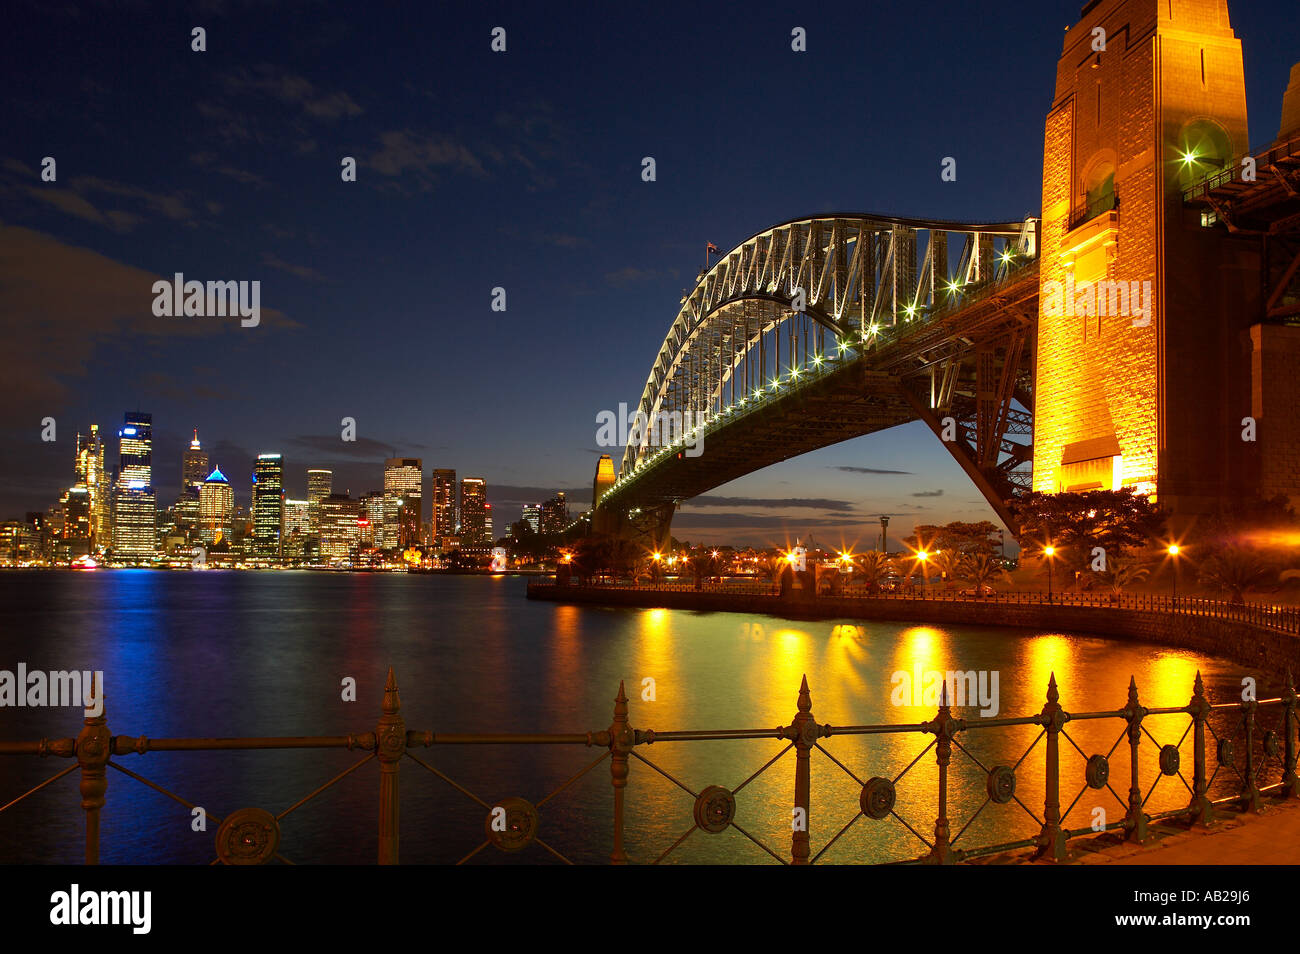 die Harbour Bridge Opera House Innenstadt in der Nacht vom Milsons Point Sydney New South Wales Australien Stockfoto